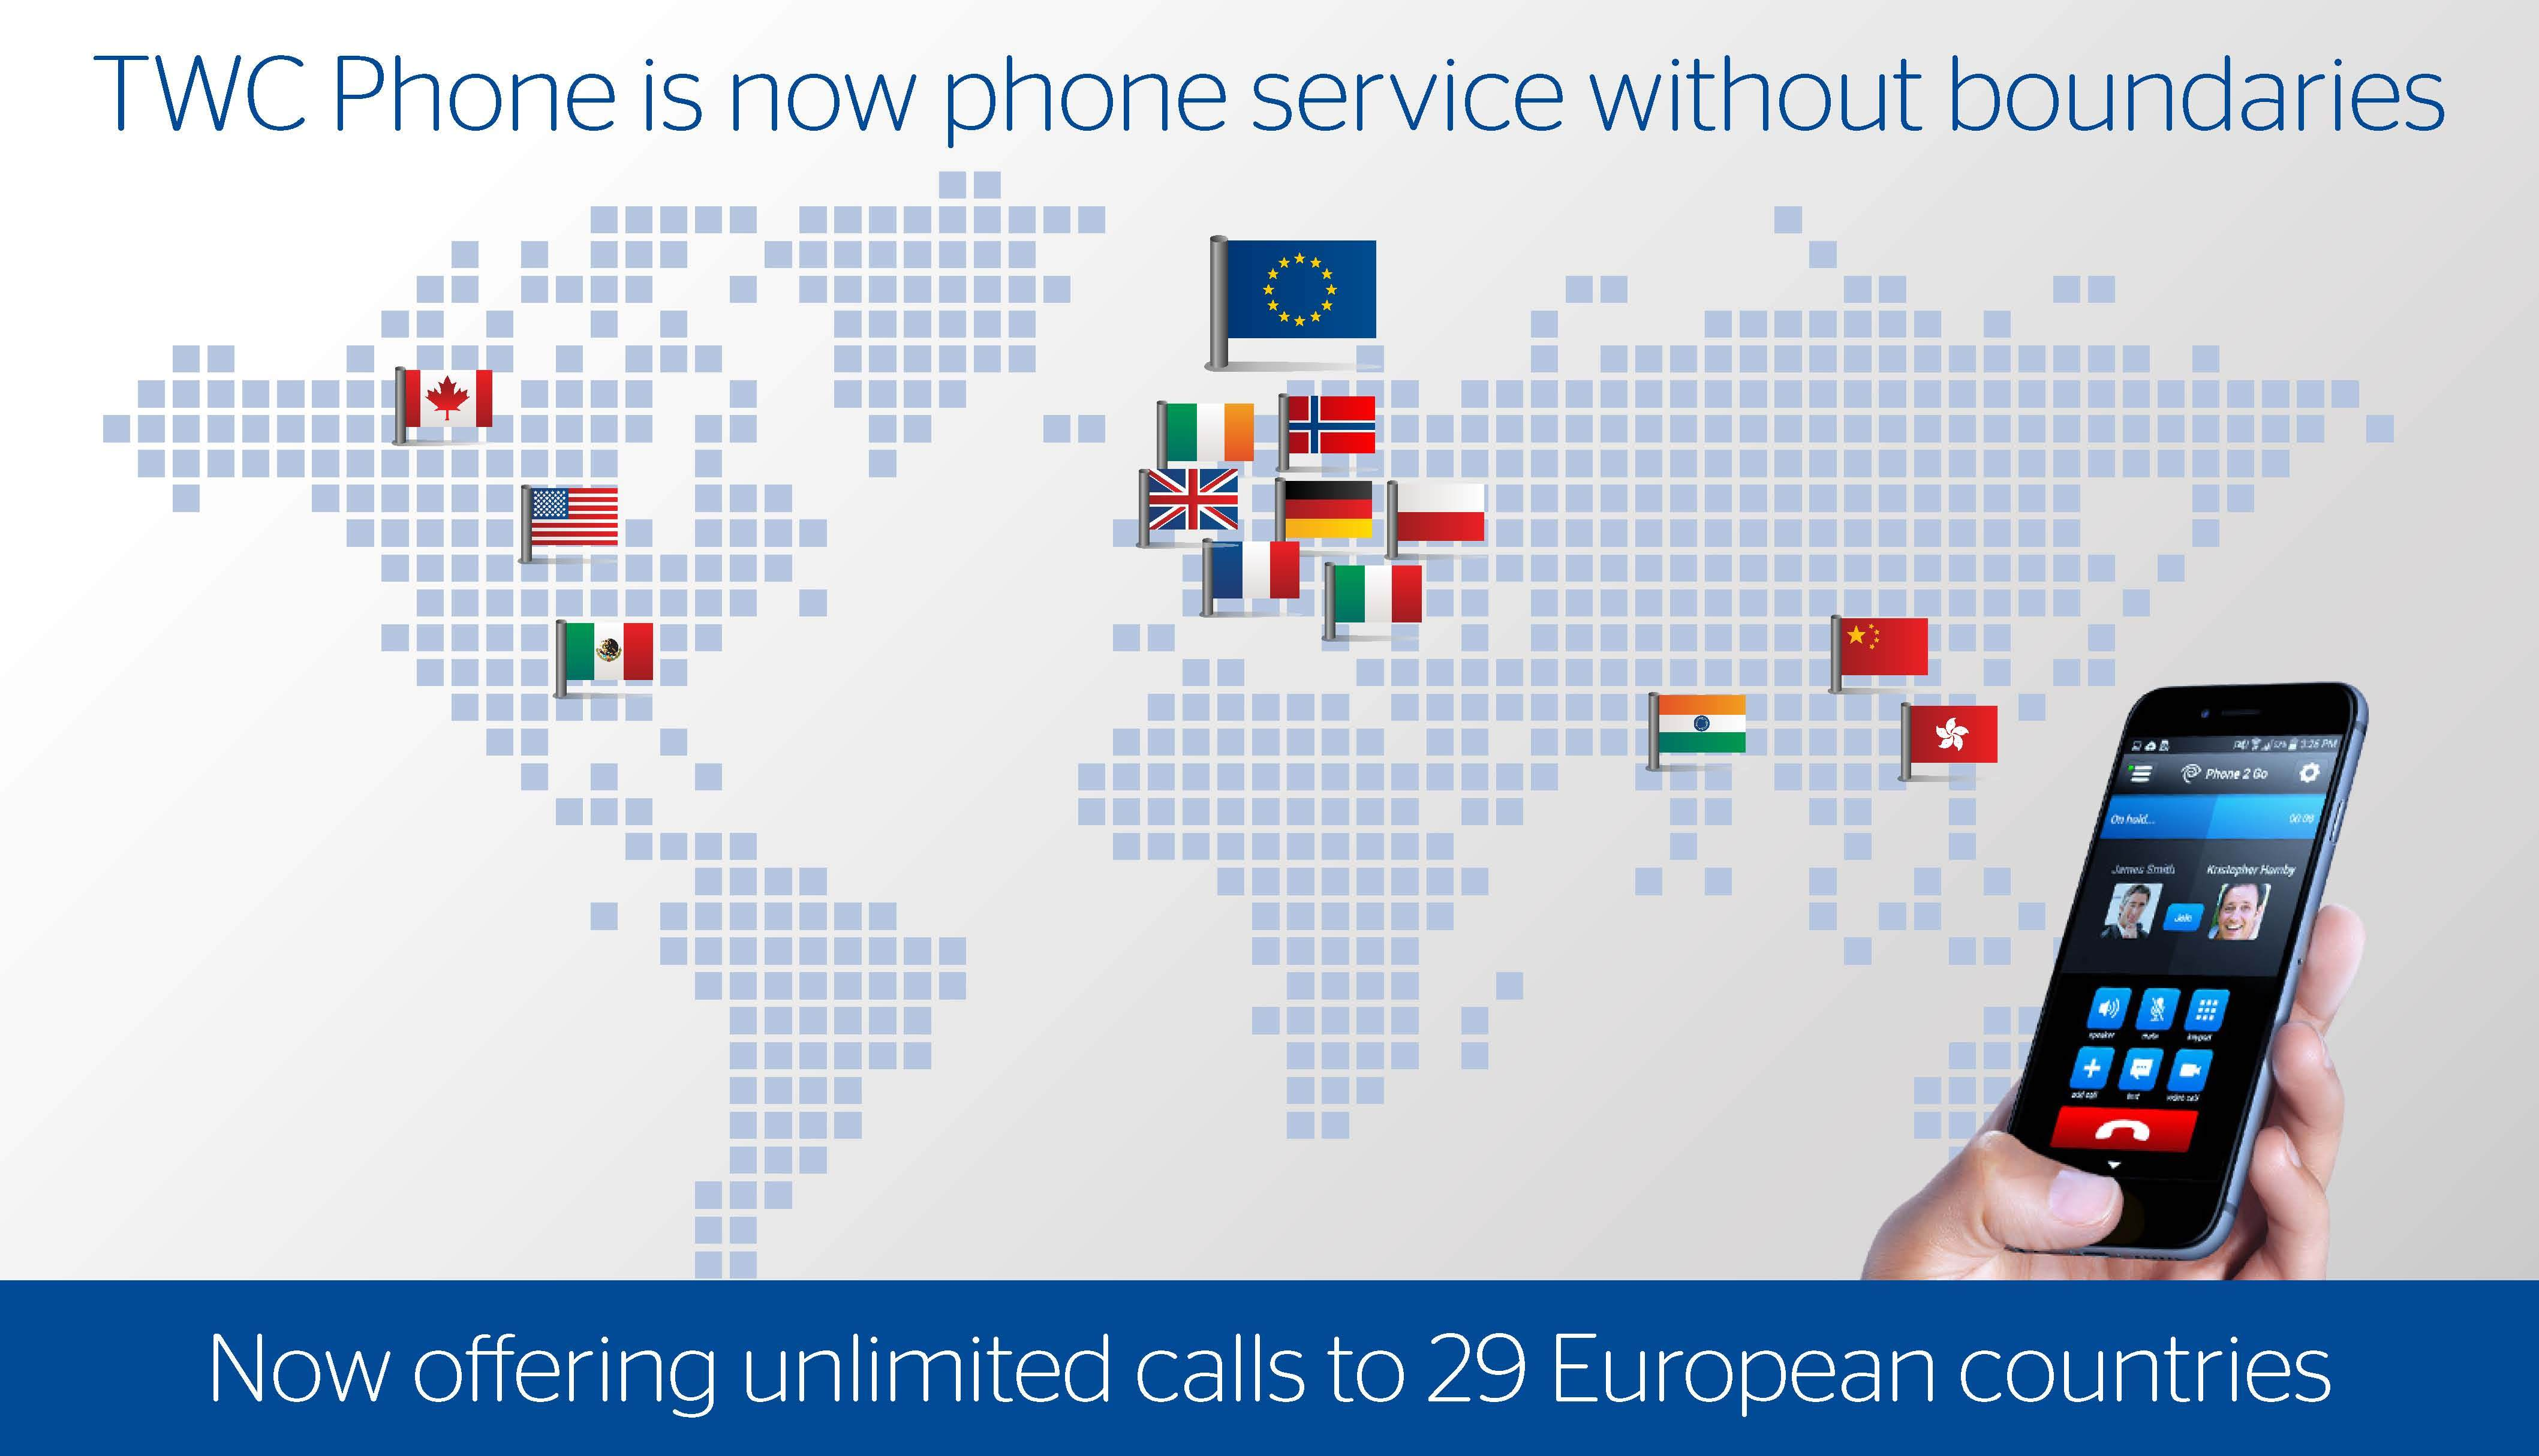 Business Phone Line Wiring Trusted Diagram Ether Wall Jack Services Unlimited Calling To 29 European Countries Now Included In Time Rh Businesswire Com Telephone Basics For Dsl